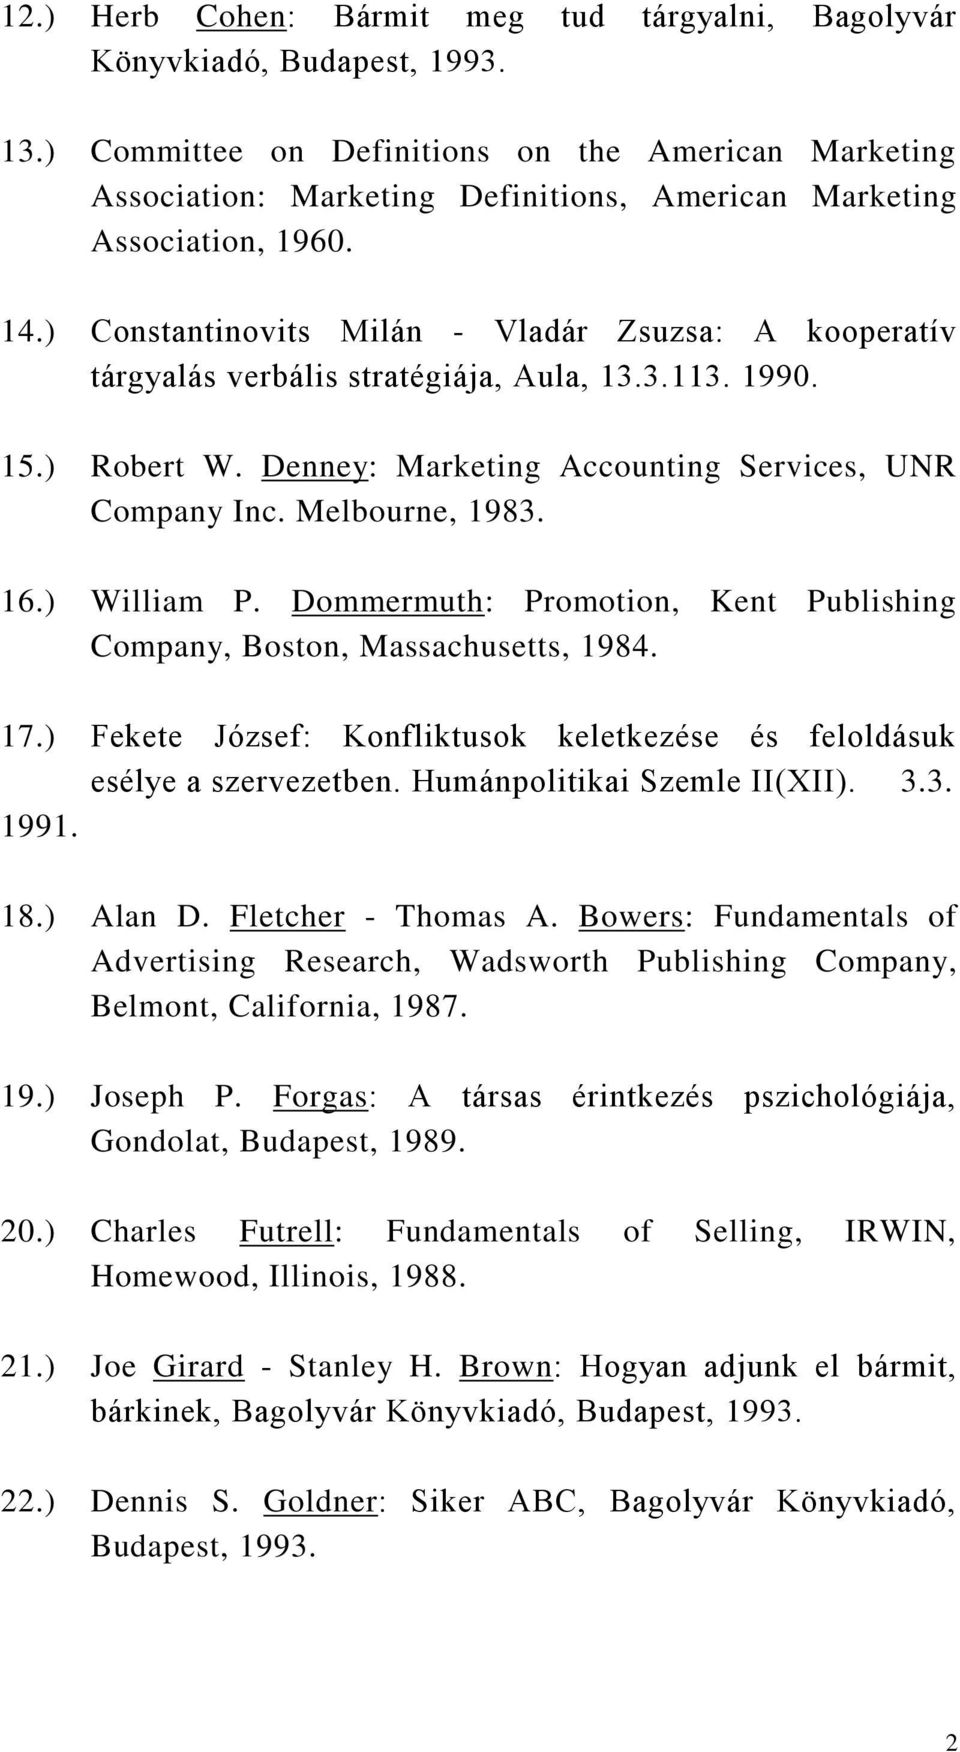 ) Constantinovits Milán - Vladár Zsuzsa: A kooperatív tárgyalás verbális stratégiája, Aula, 13.3.113. 1990. 15.) Robert W. Denney: Marketing Accounting Services, UNR Company Inc. Melbourne, 1983. 16.